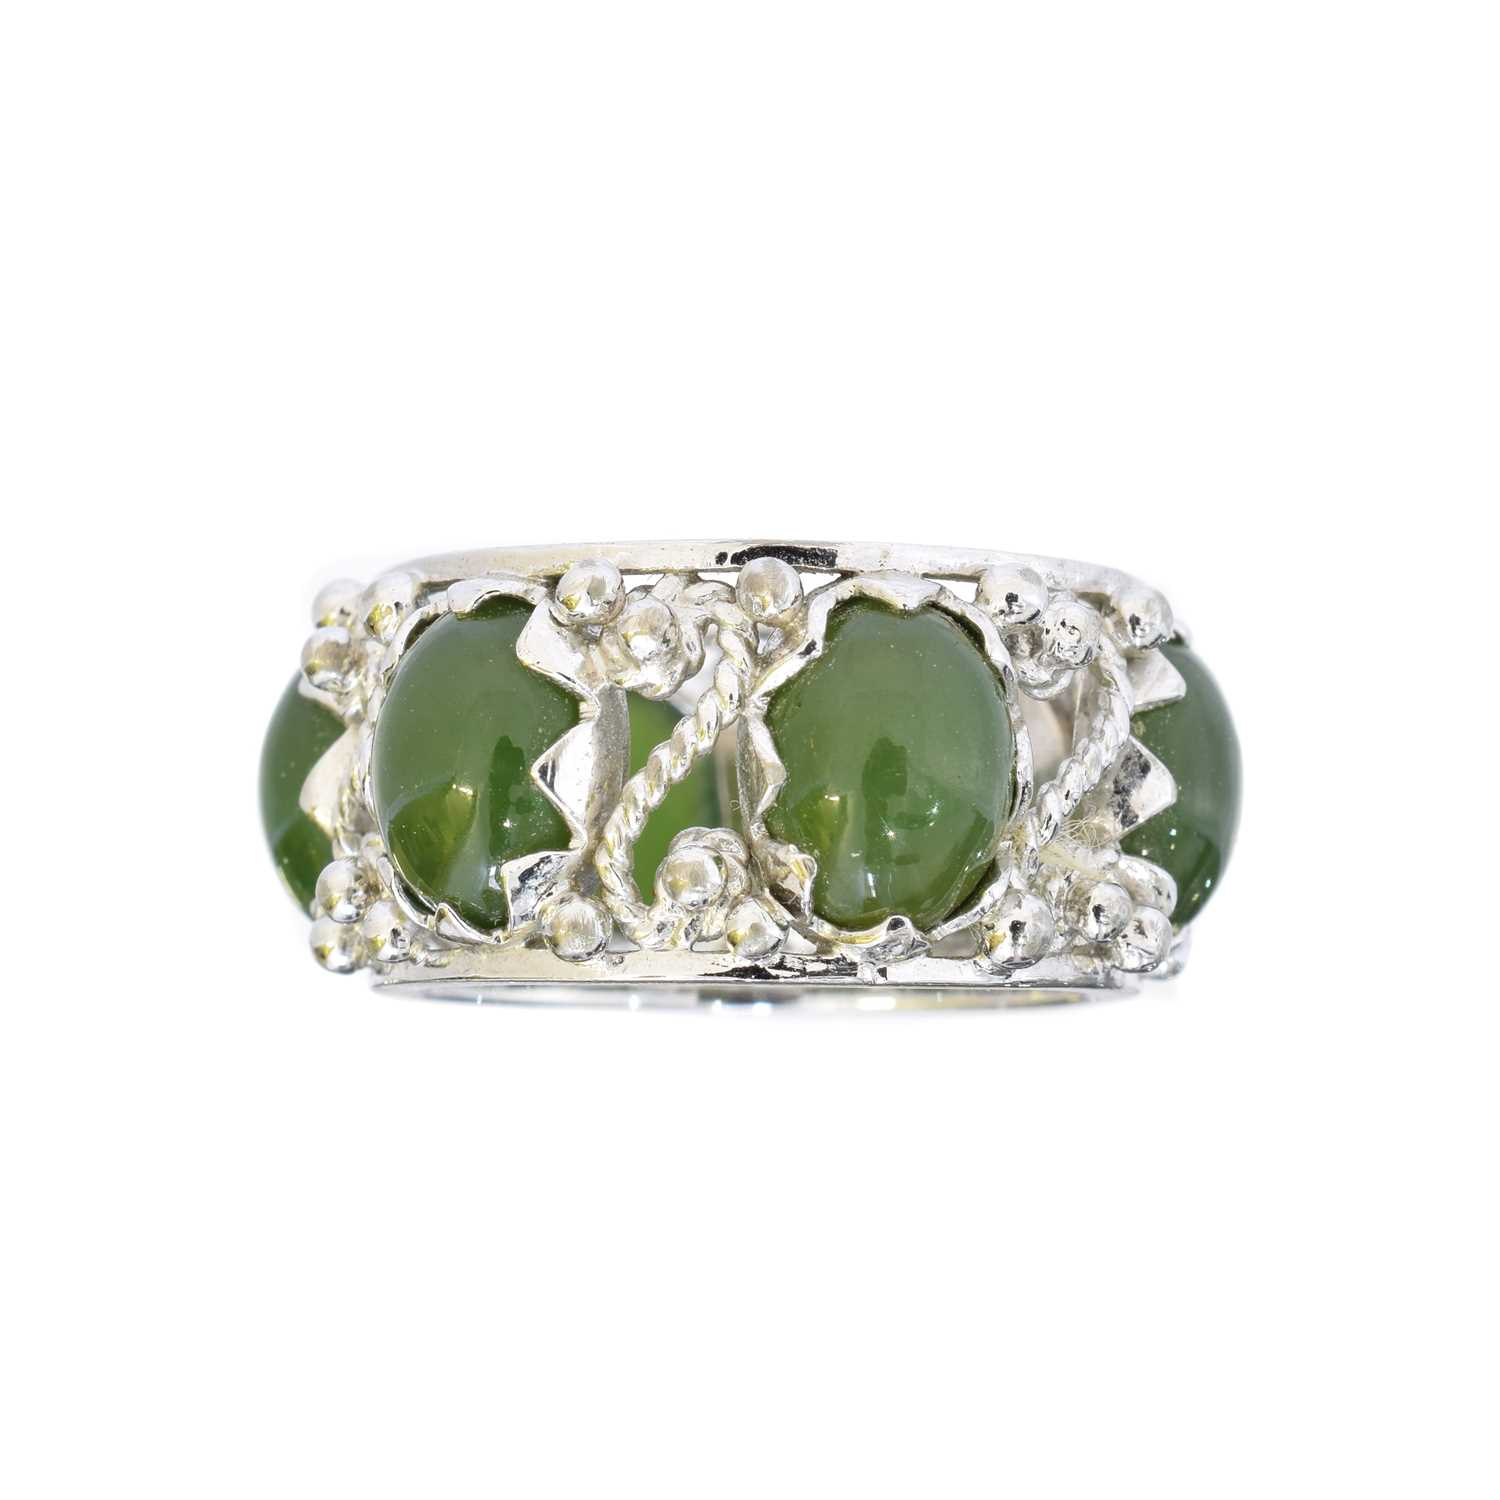 Lot 22 - A nephrite band ring